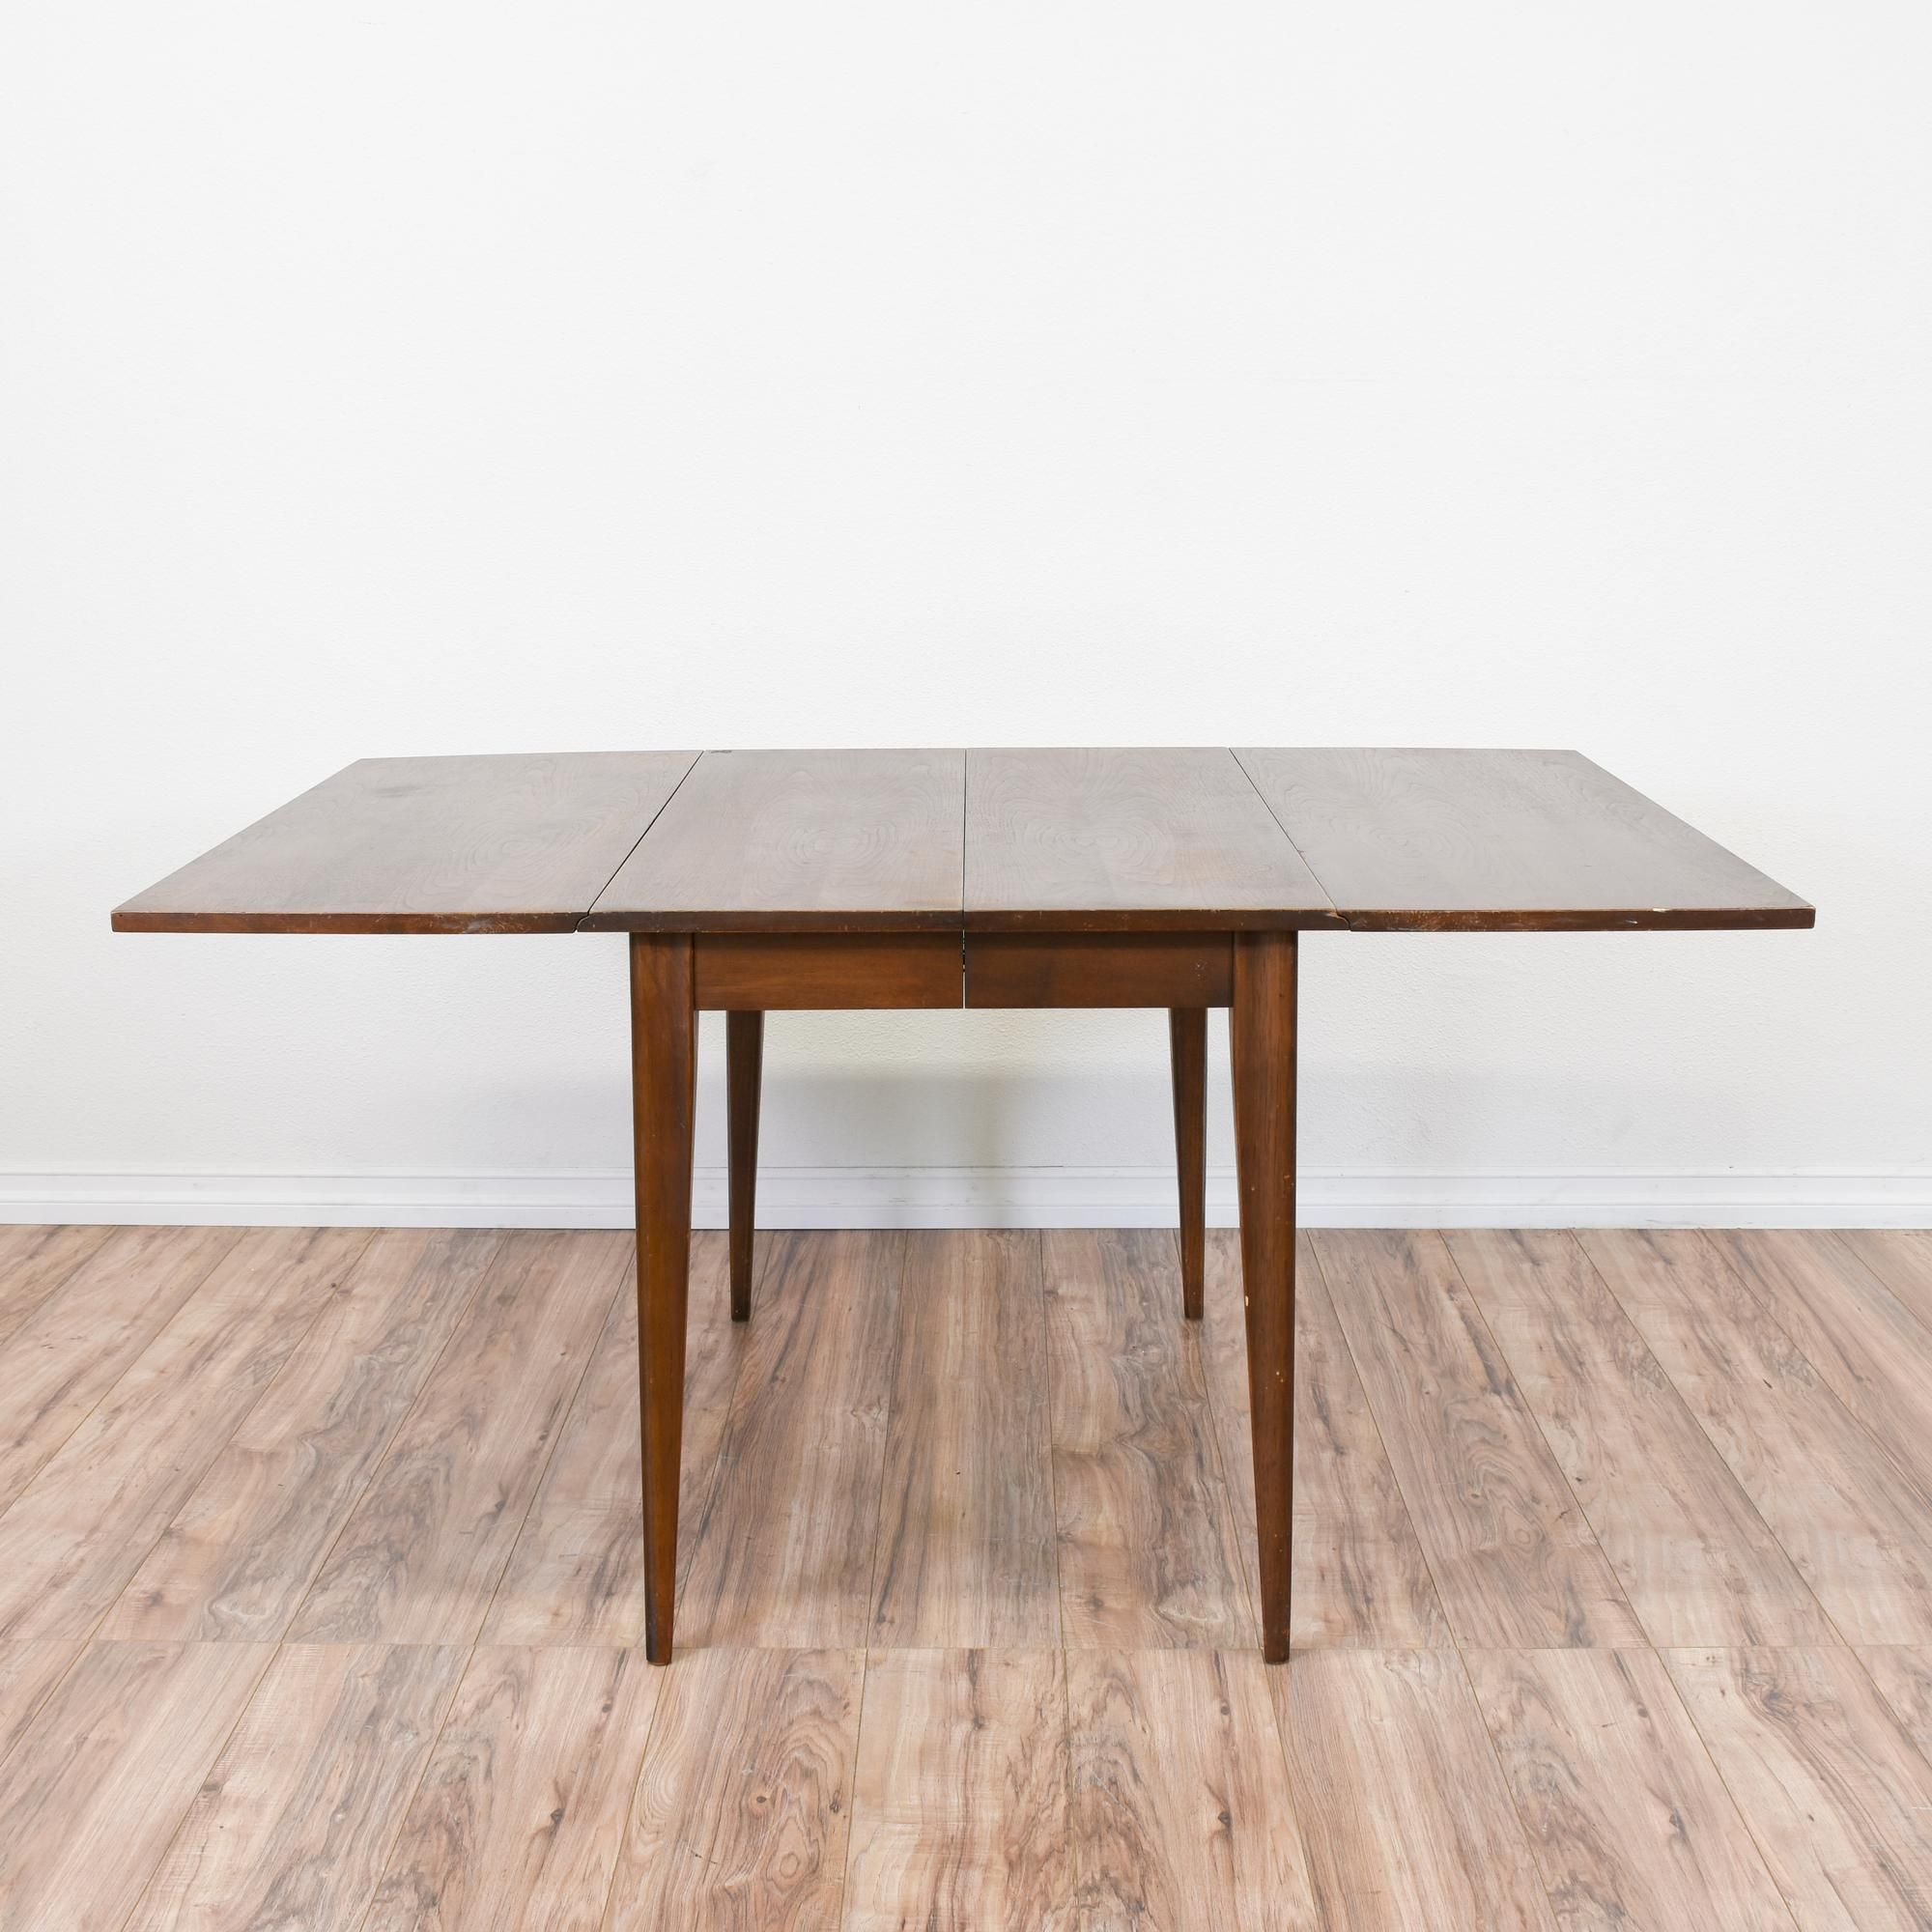 This Mid Century Modern Drop Leaf Table Is Featured In A Solid